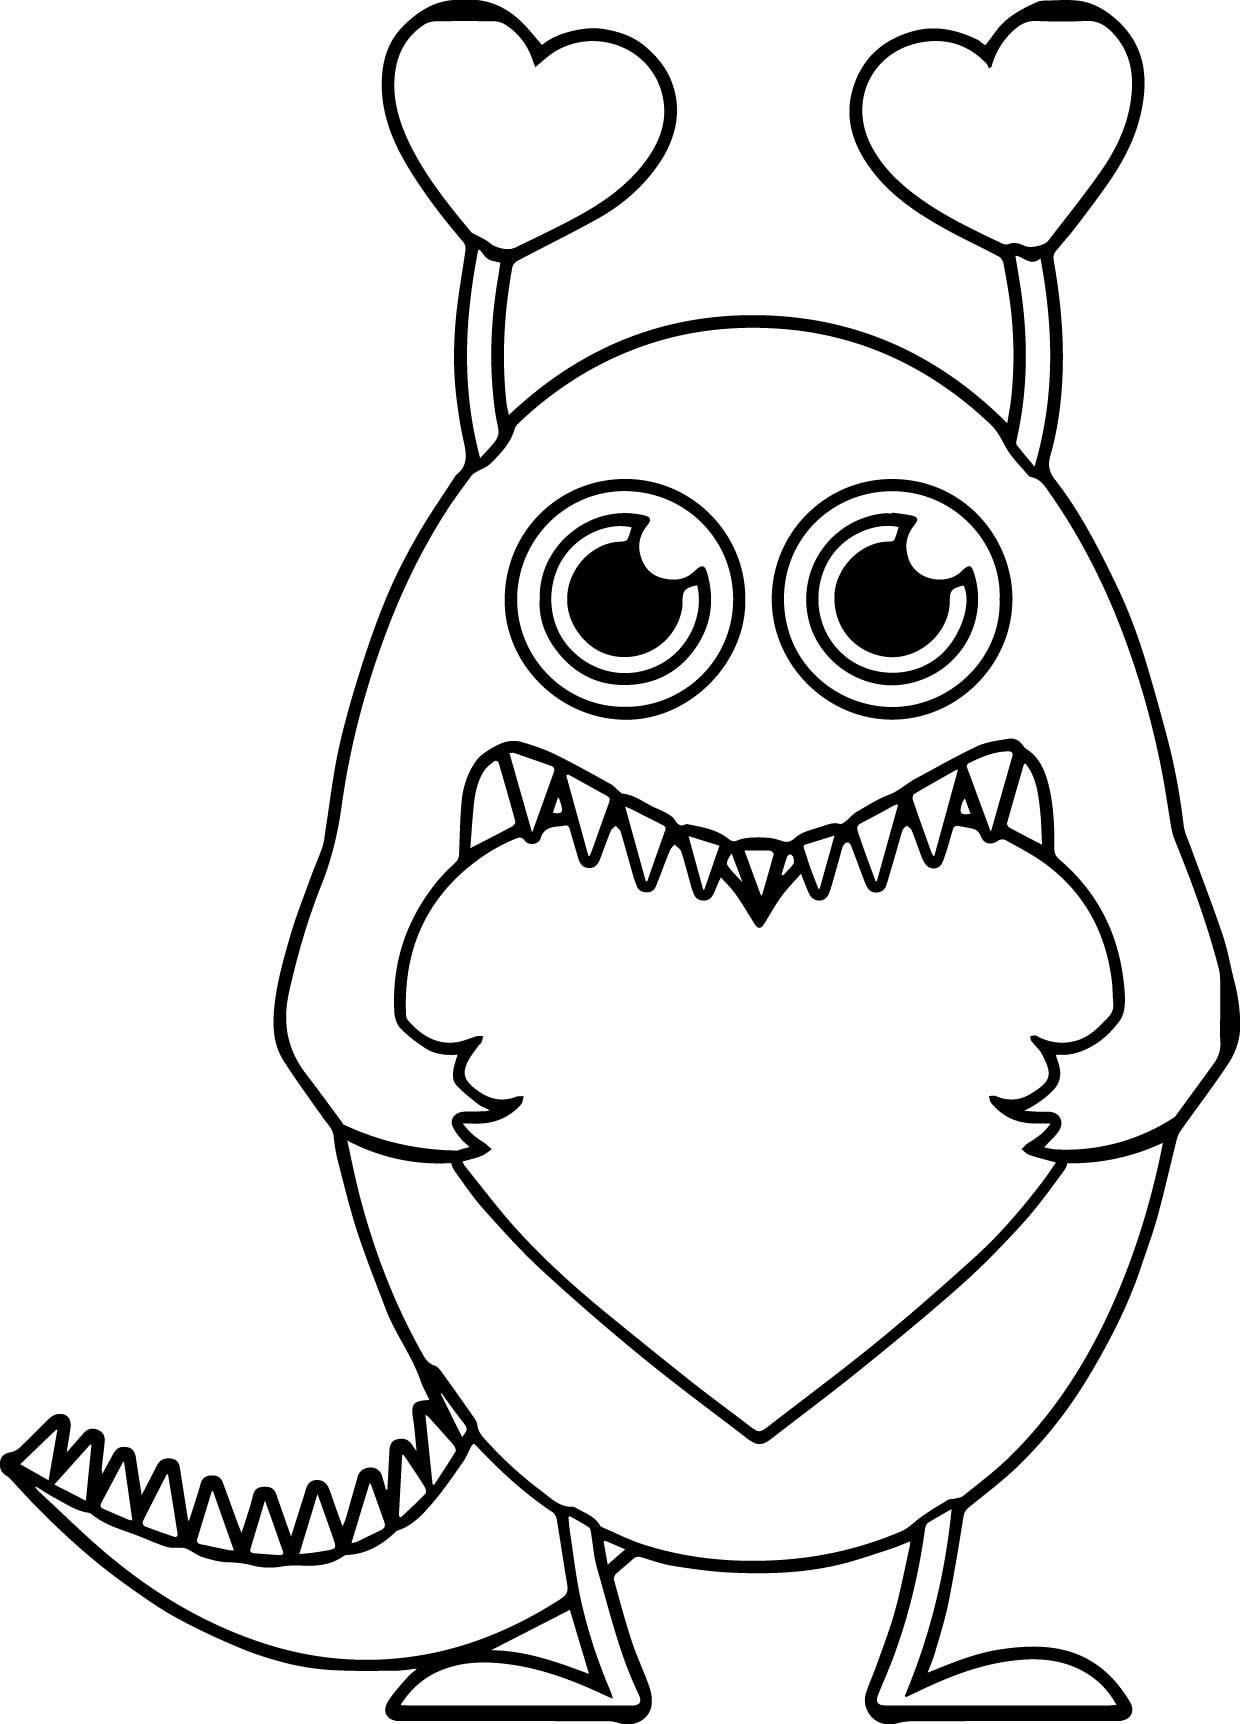 1240x1724 Stunning Monster Valentine Heart Coloring Page Wecoloringpage